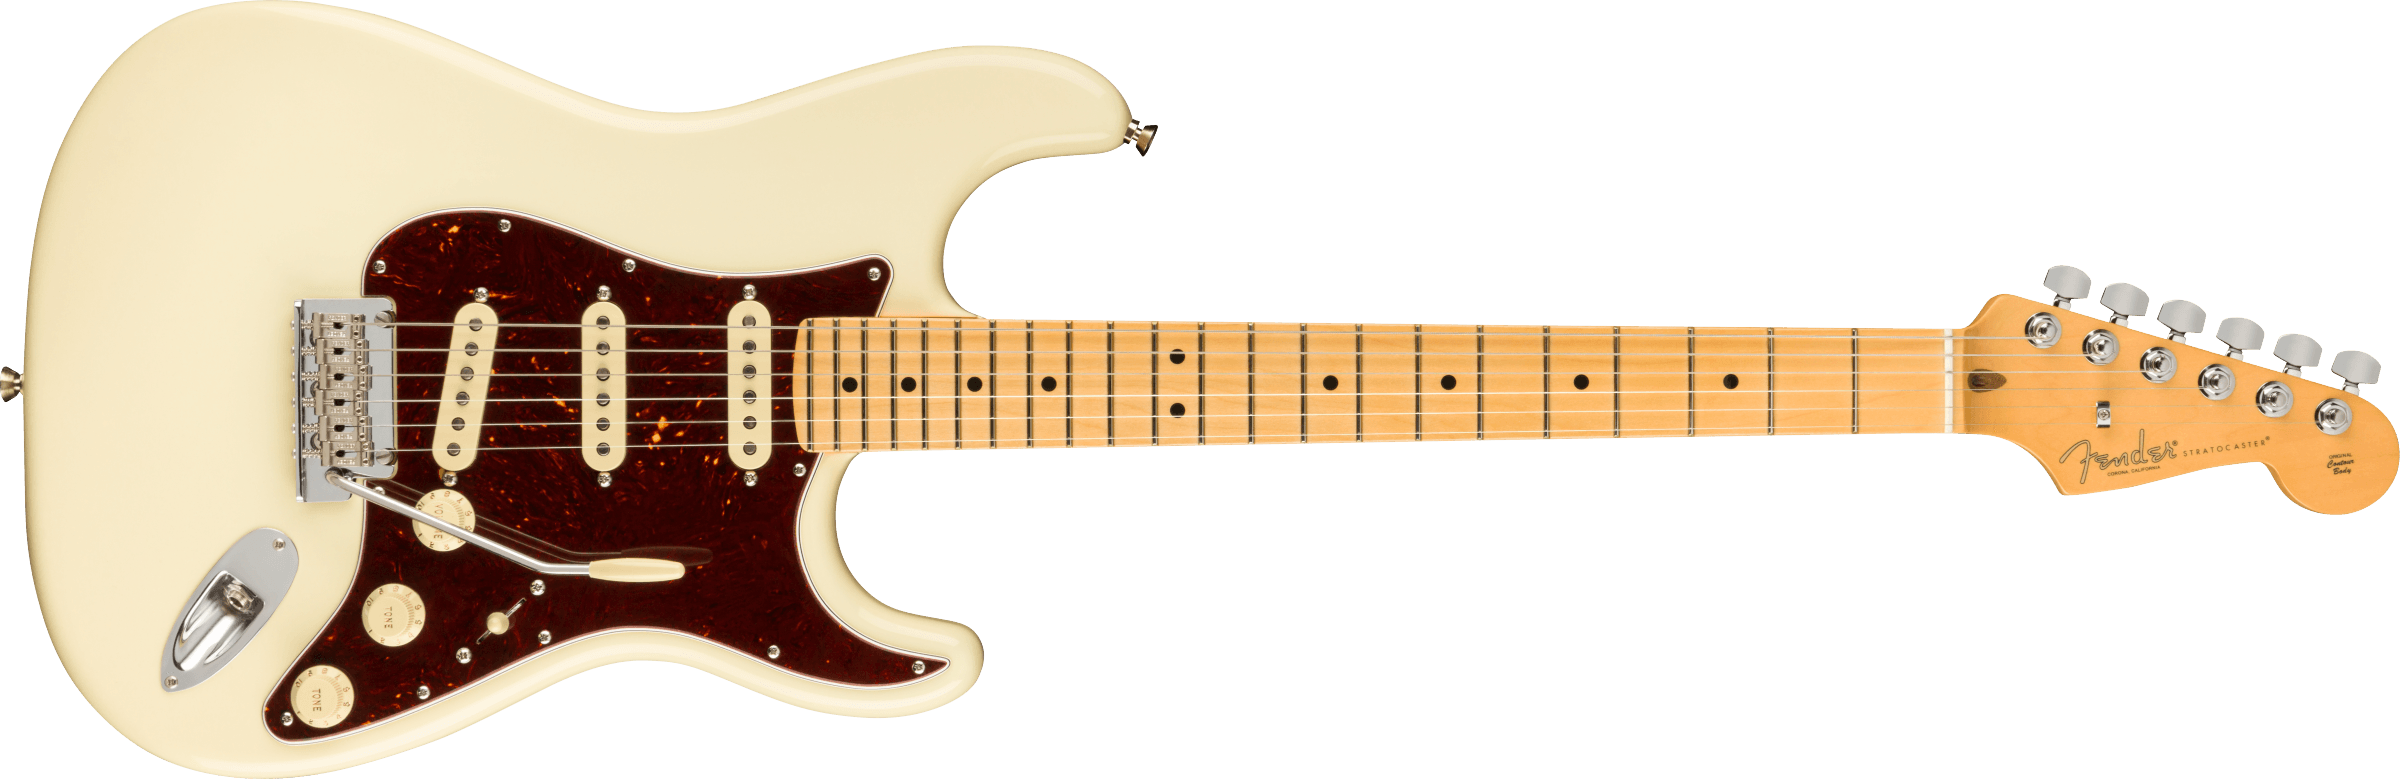 FENDER-American-Professional-II-Stratocaster-Maple-Fingerboard-Olympic-White-sku-571005529